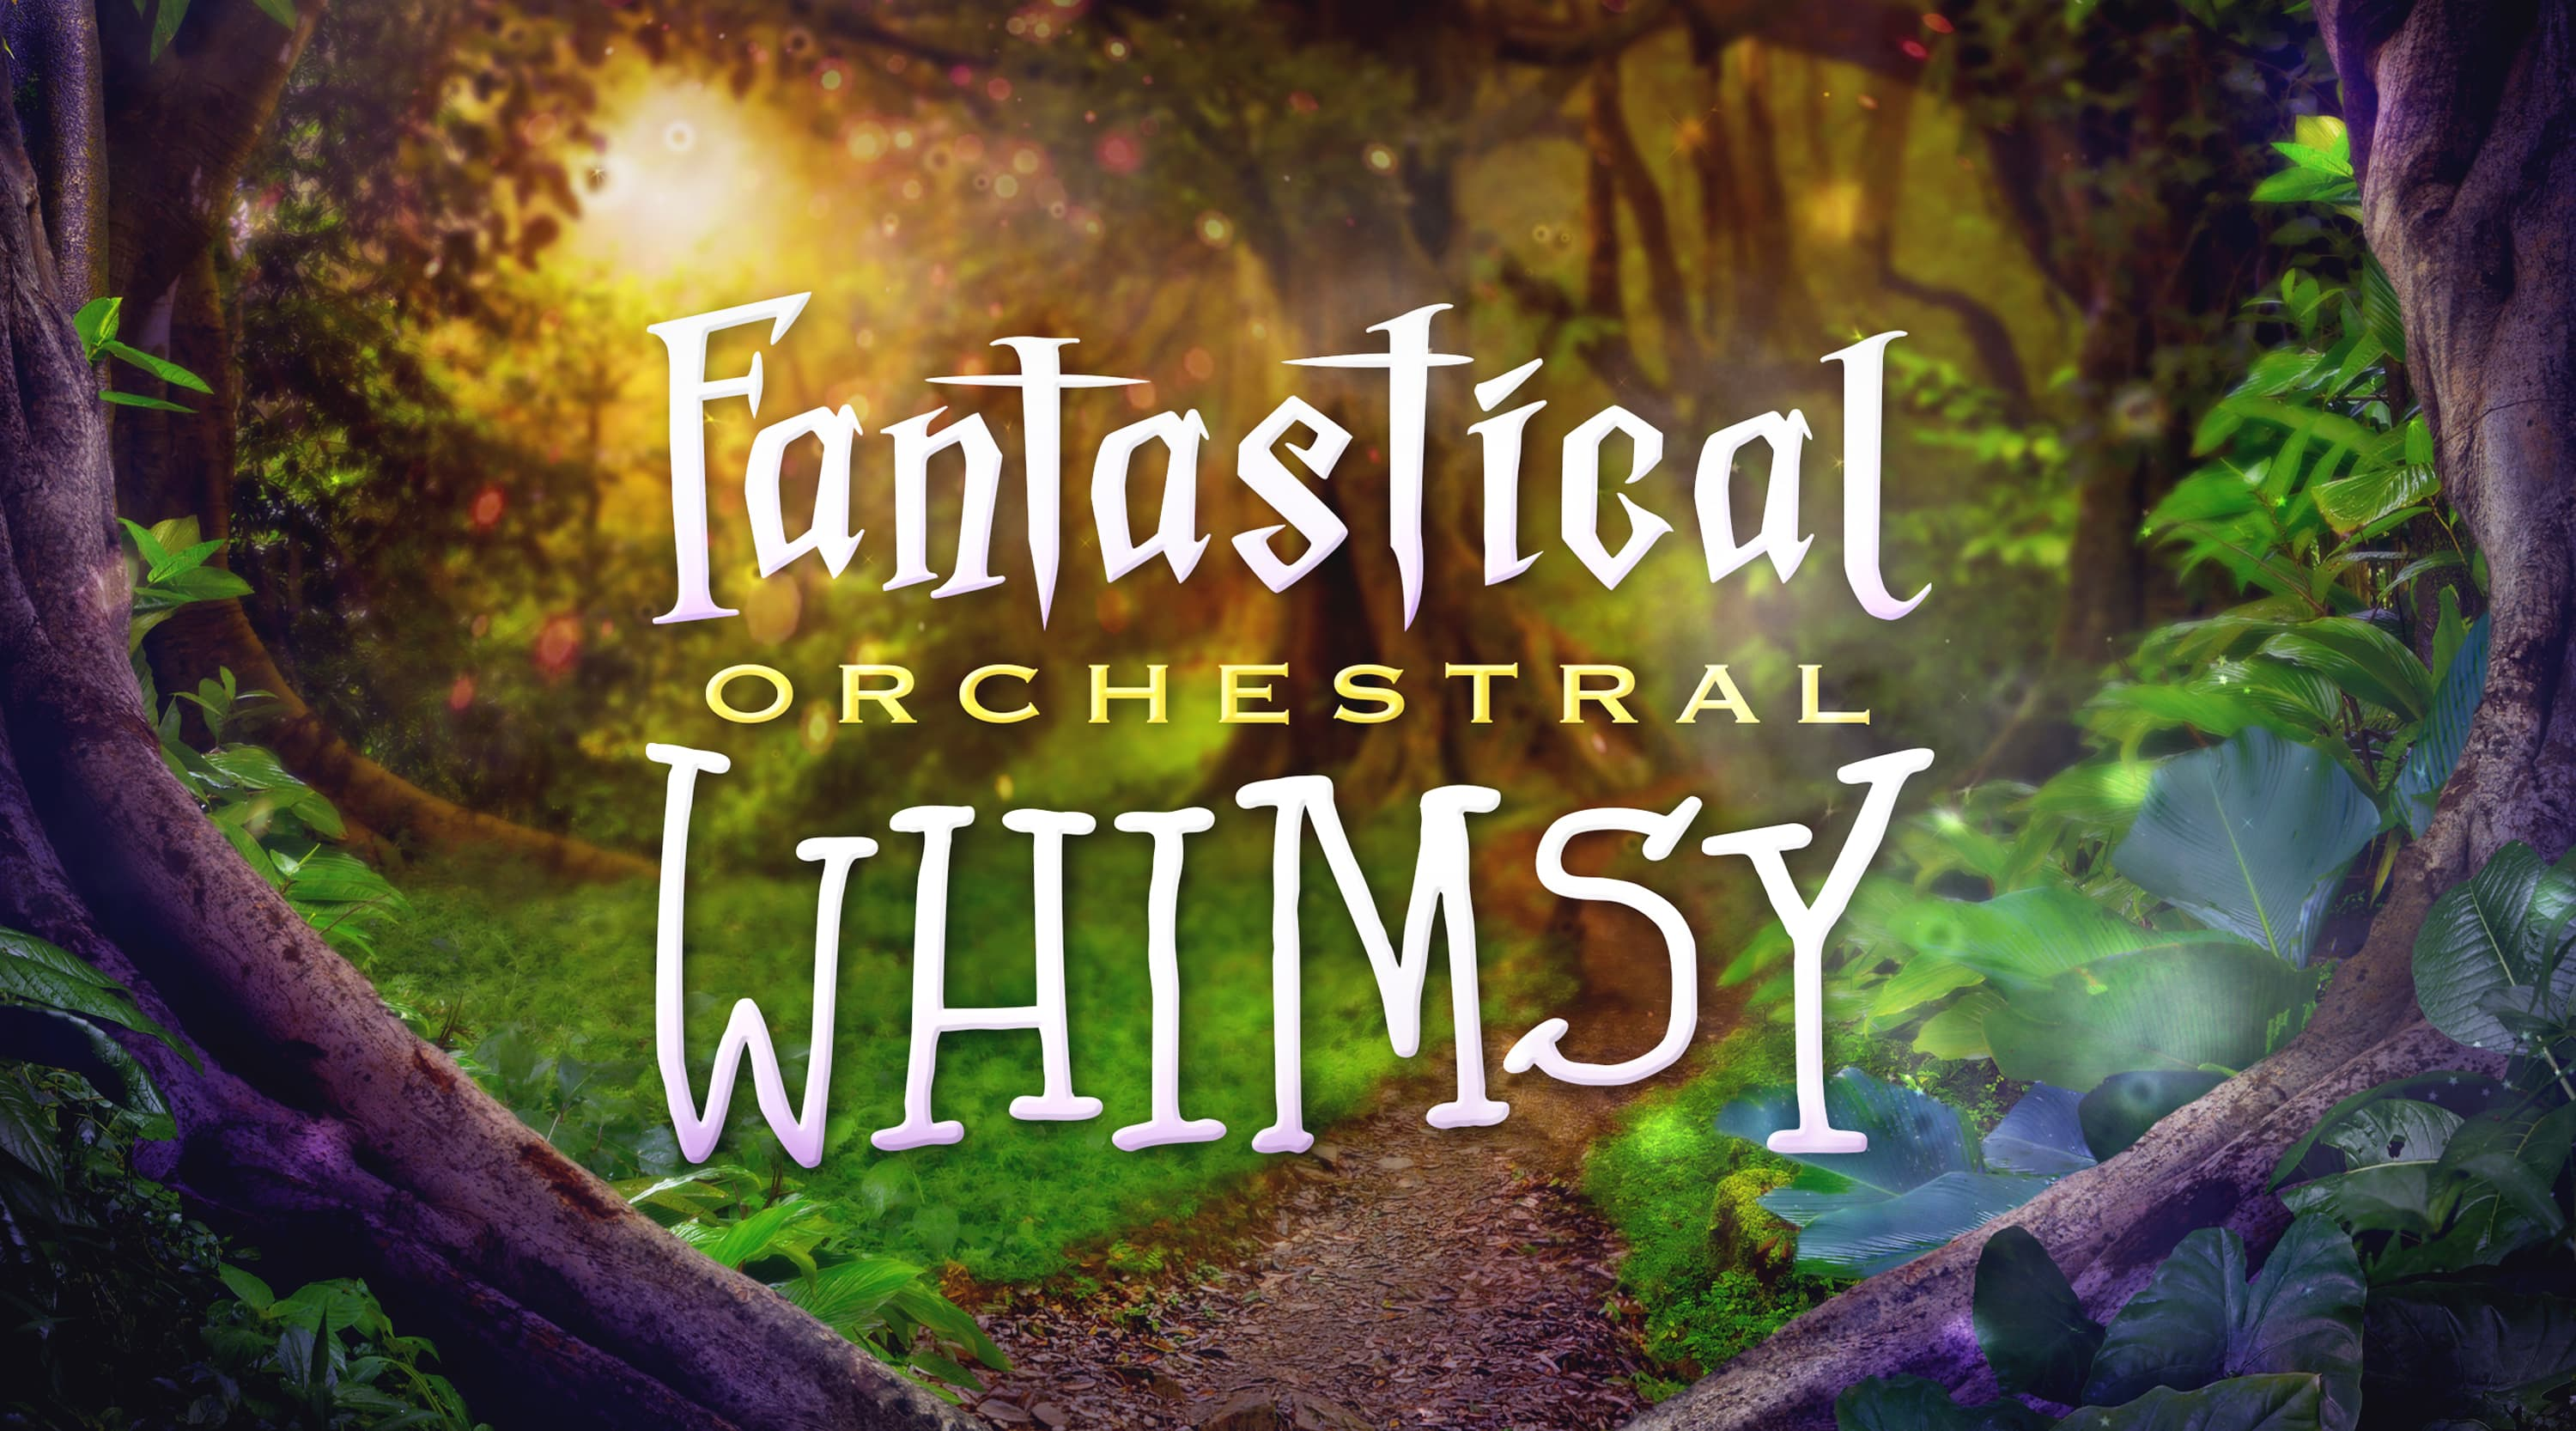 Fantastical Orchestral Whimsy